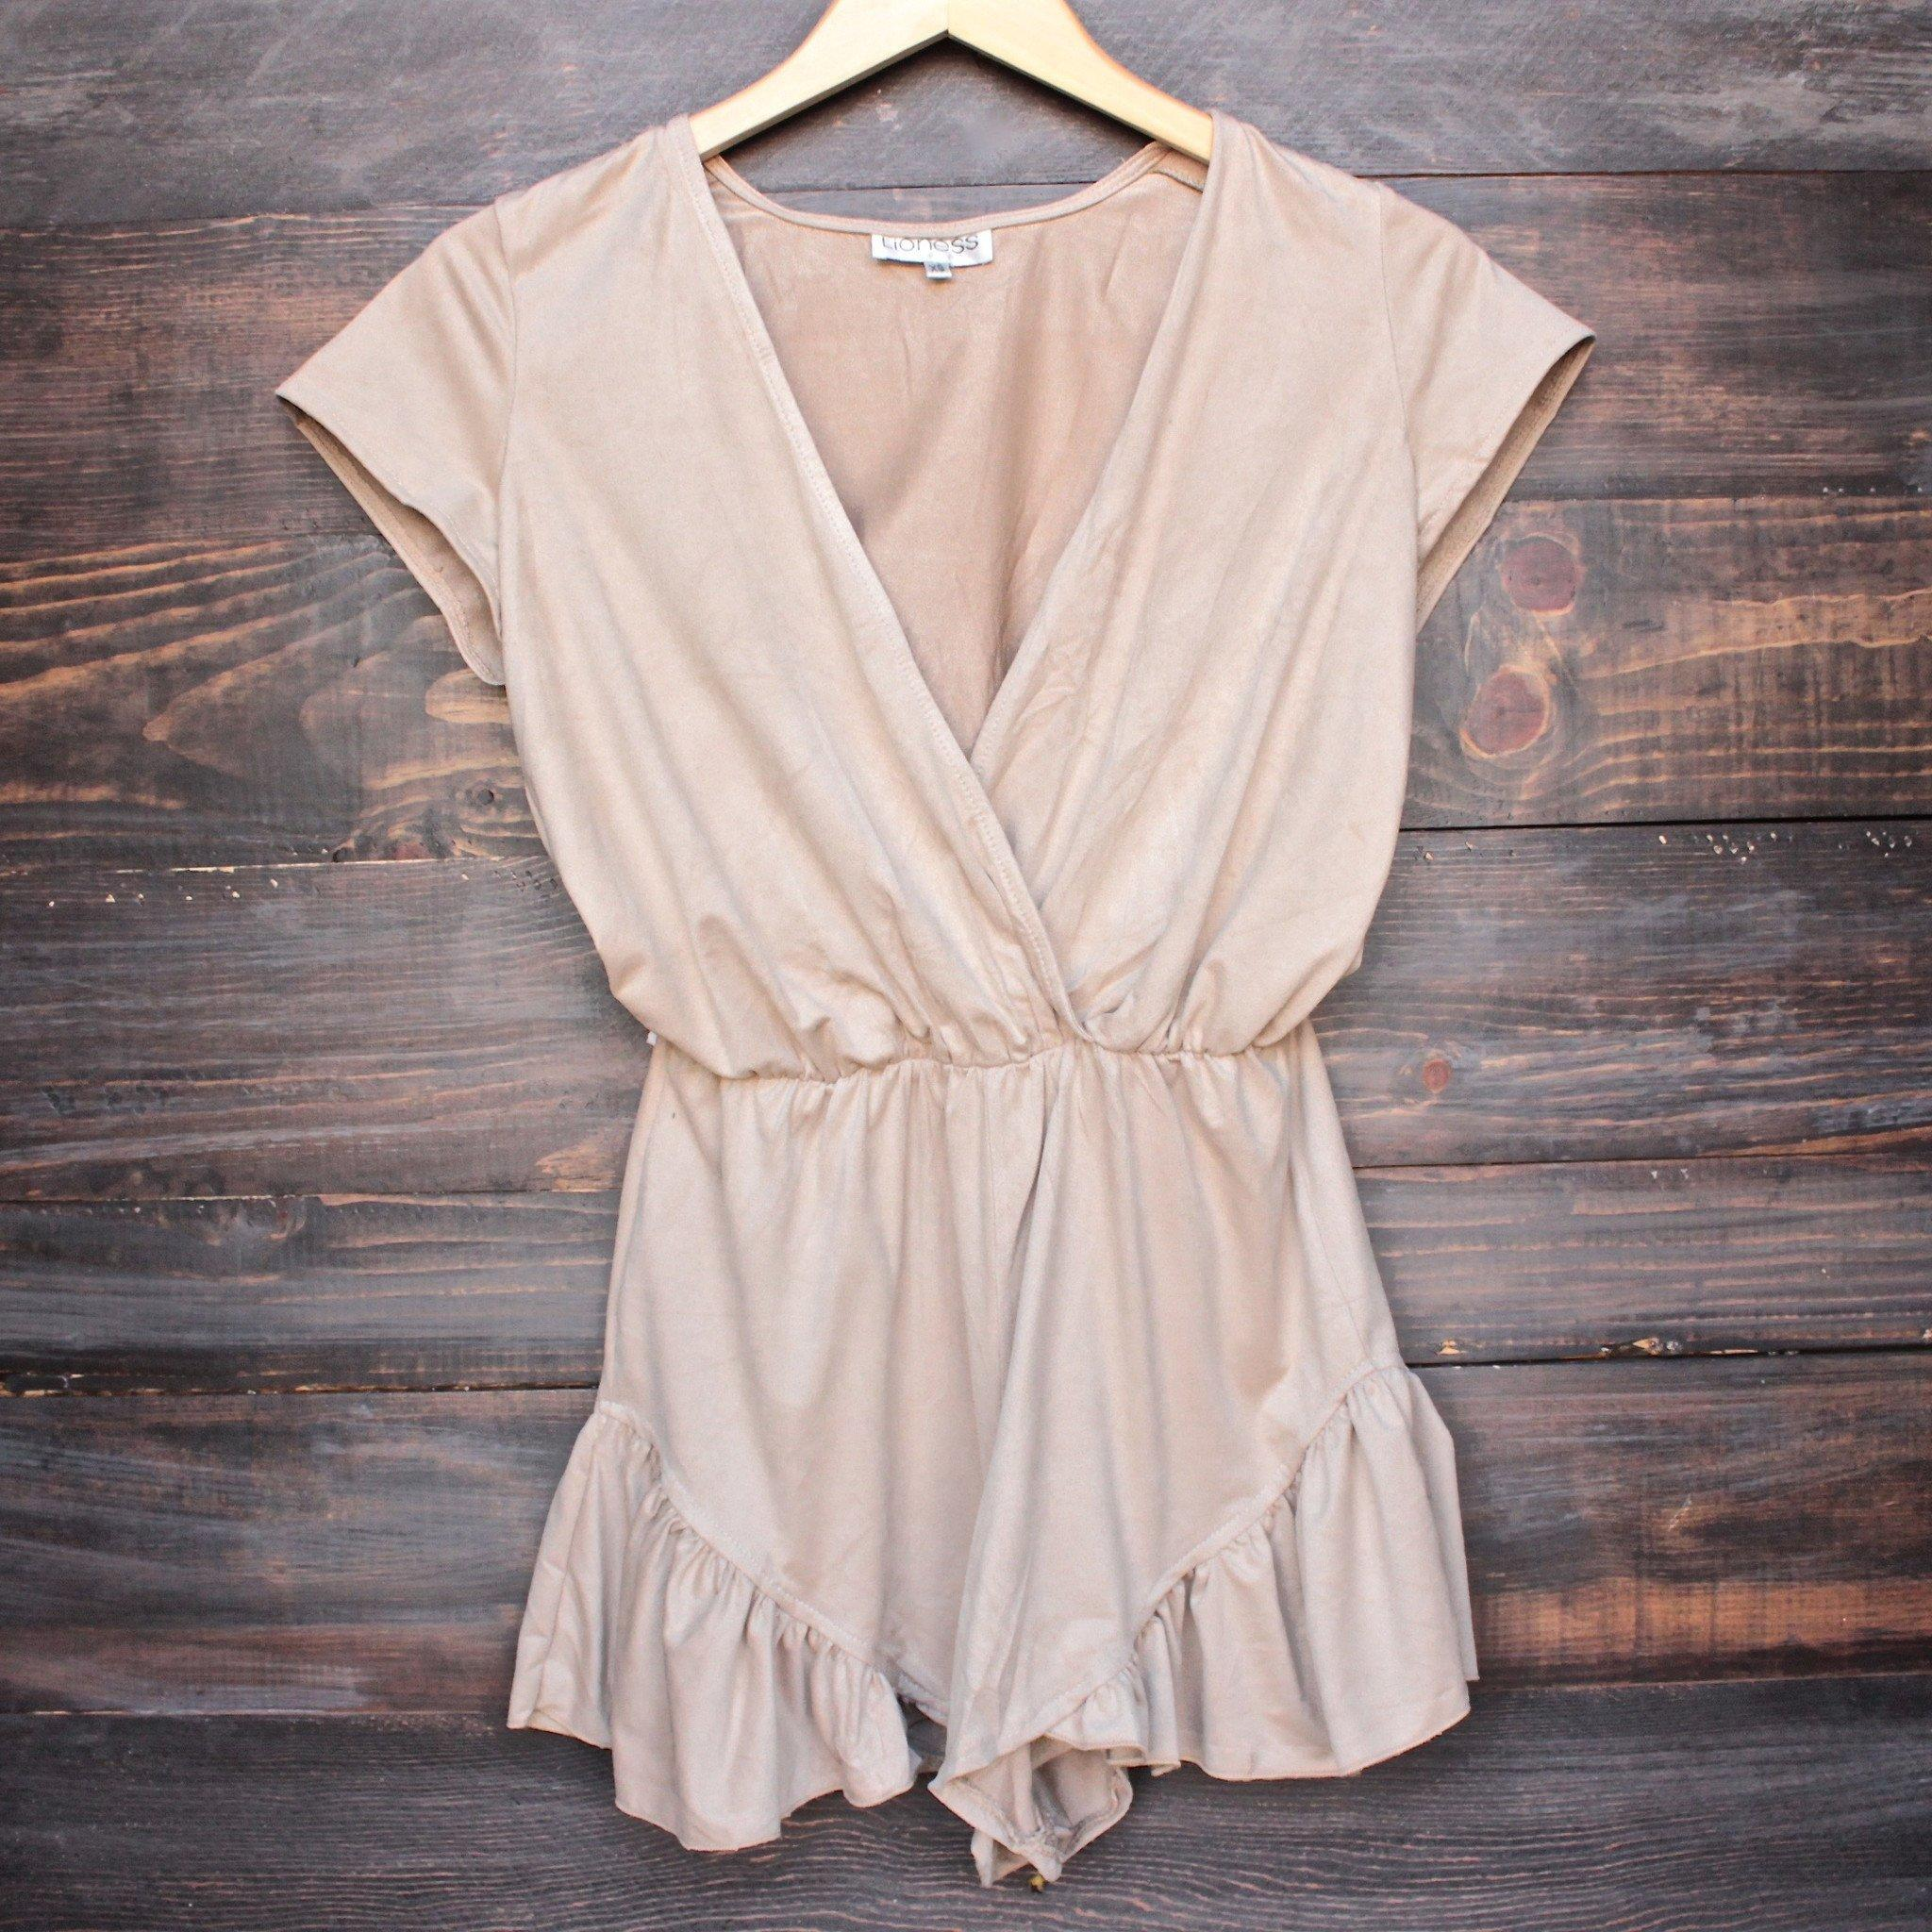 Image of Lioness pur-suede me with ruffle hem romper in beige suede